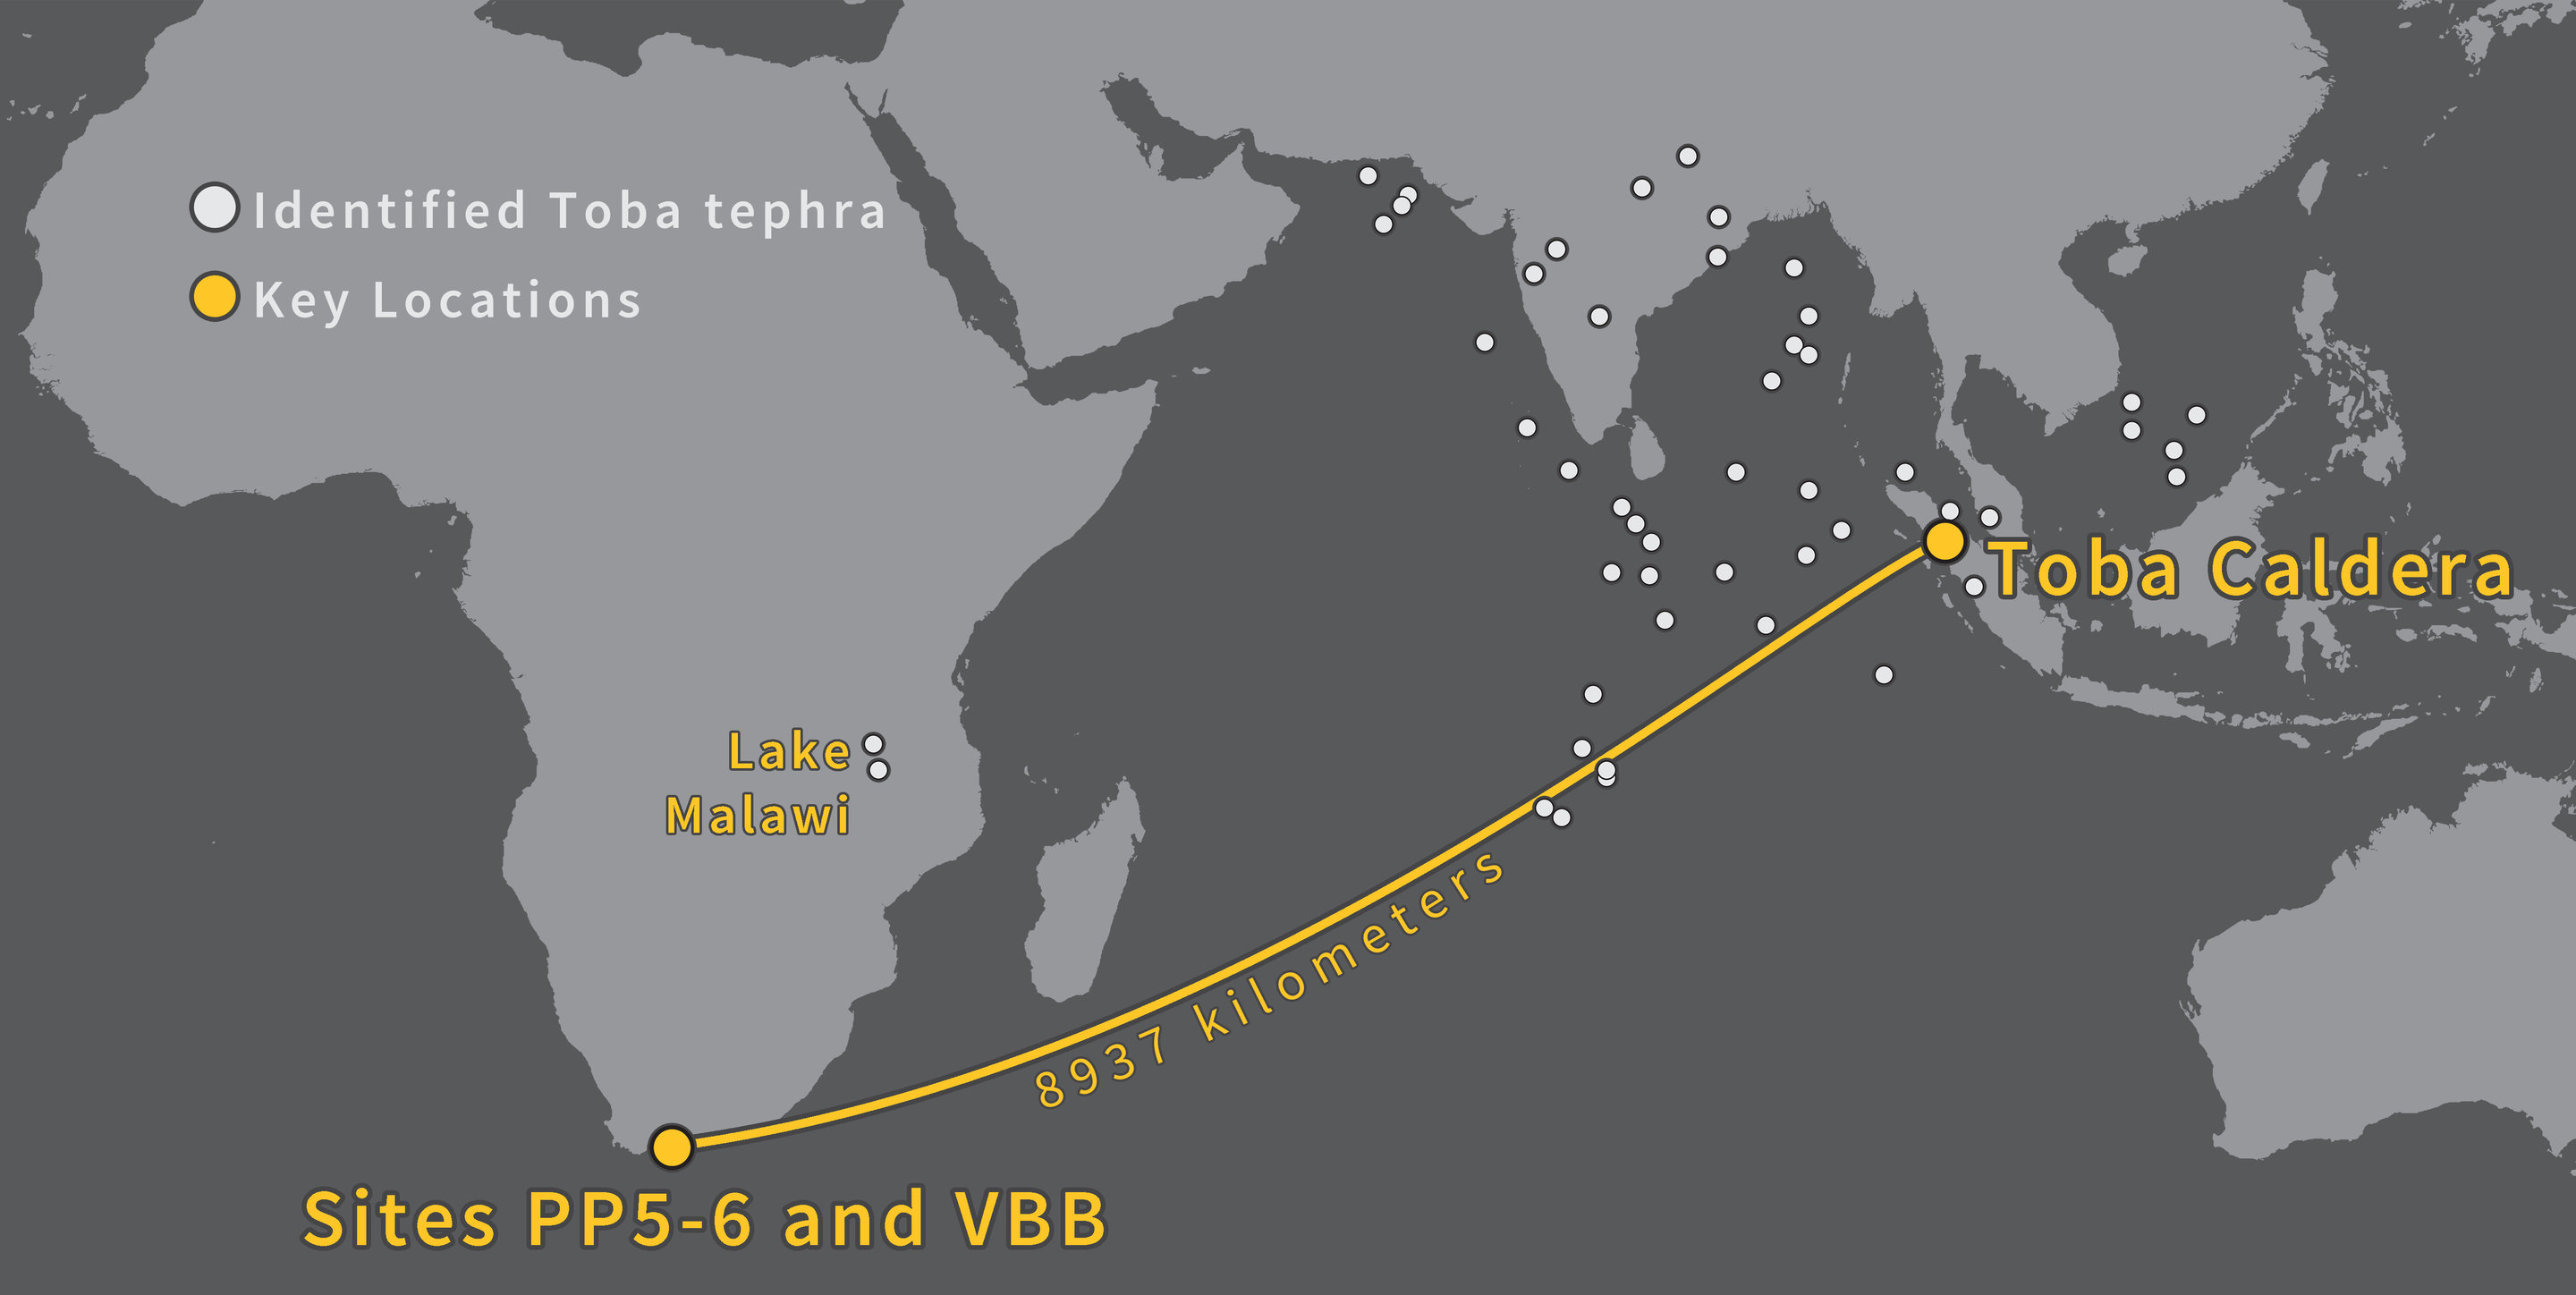 Humans thrived in South Africa through the Toba super-volcanic eruption about 74,000 years ago